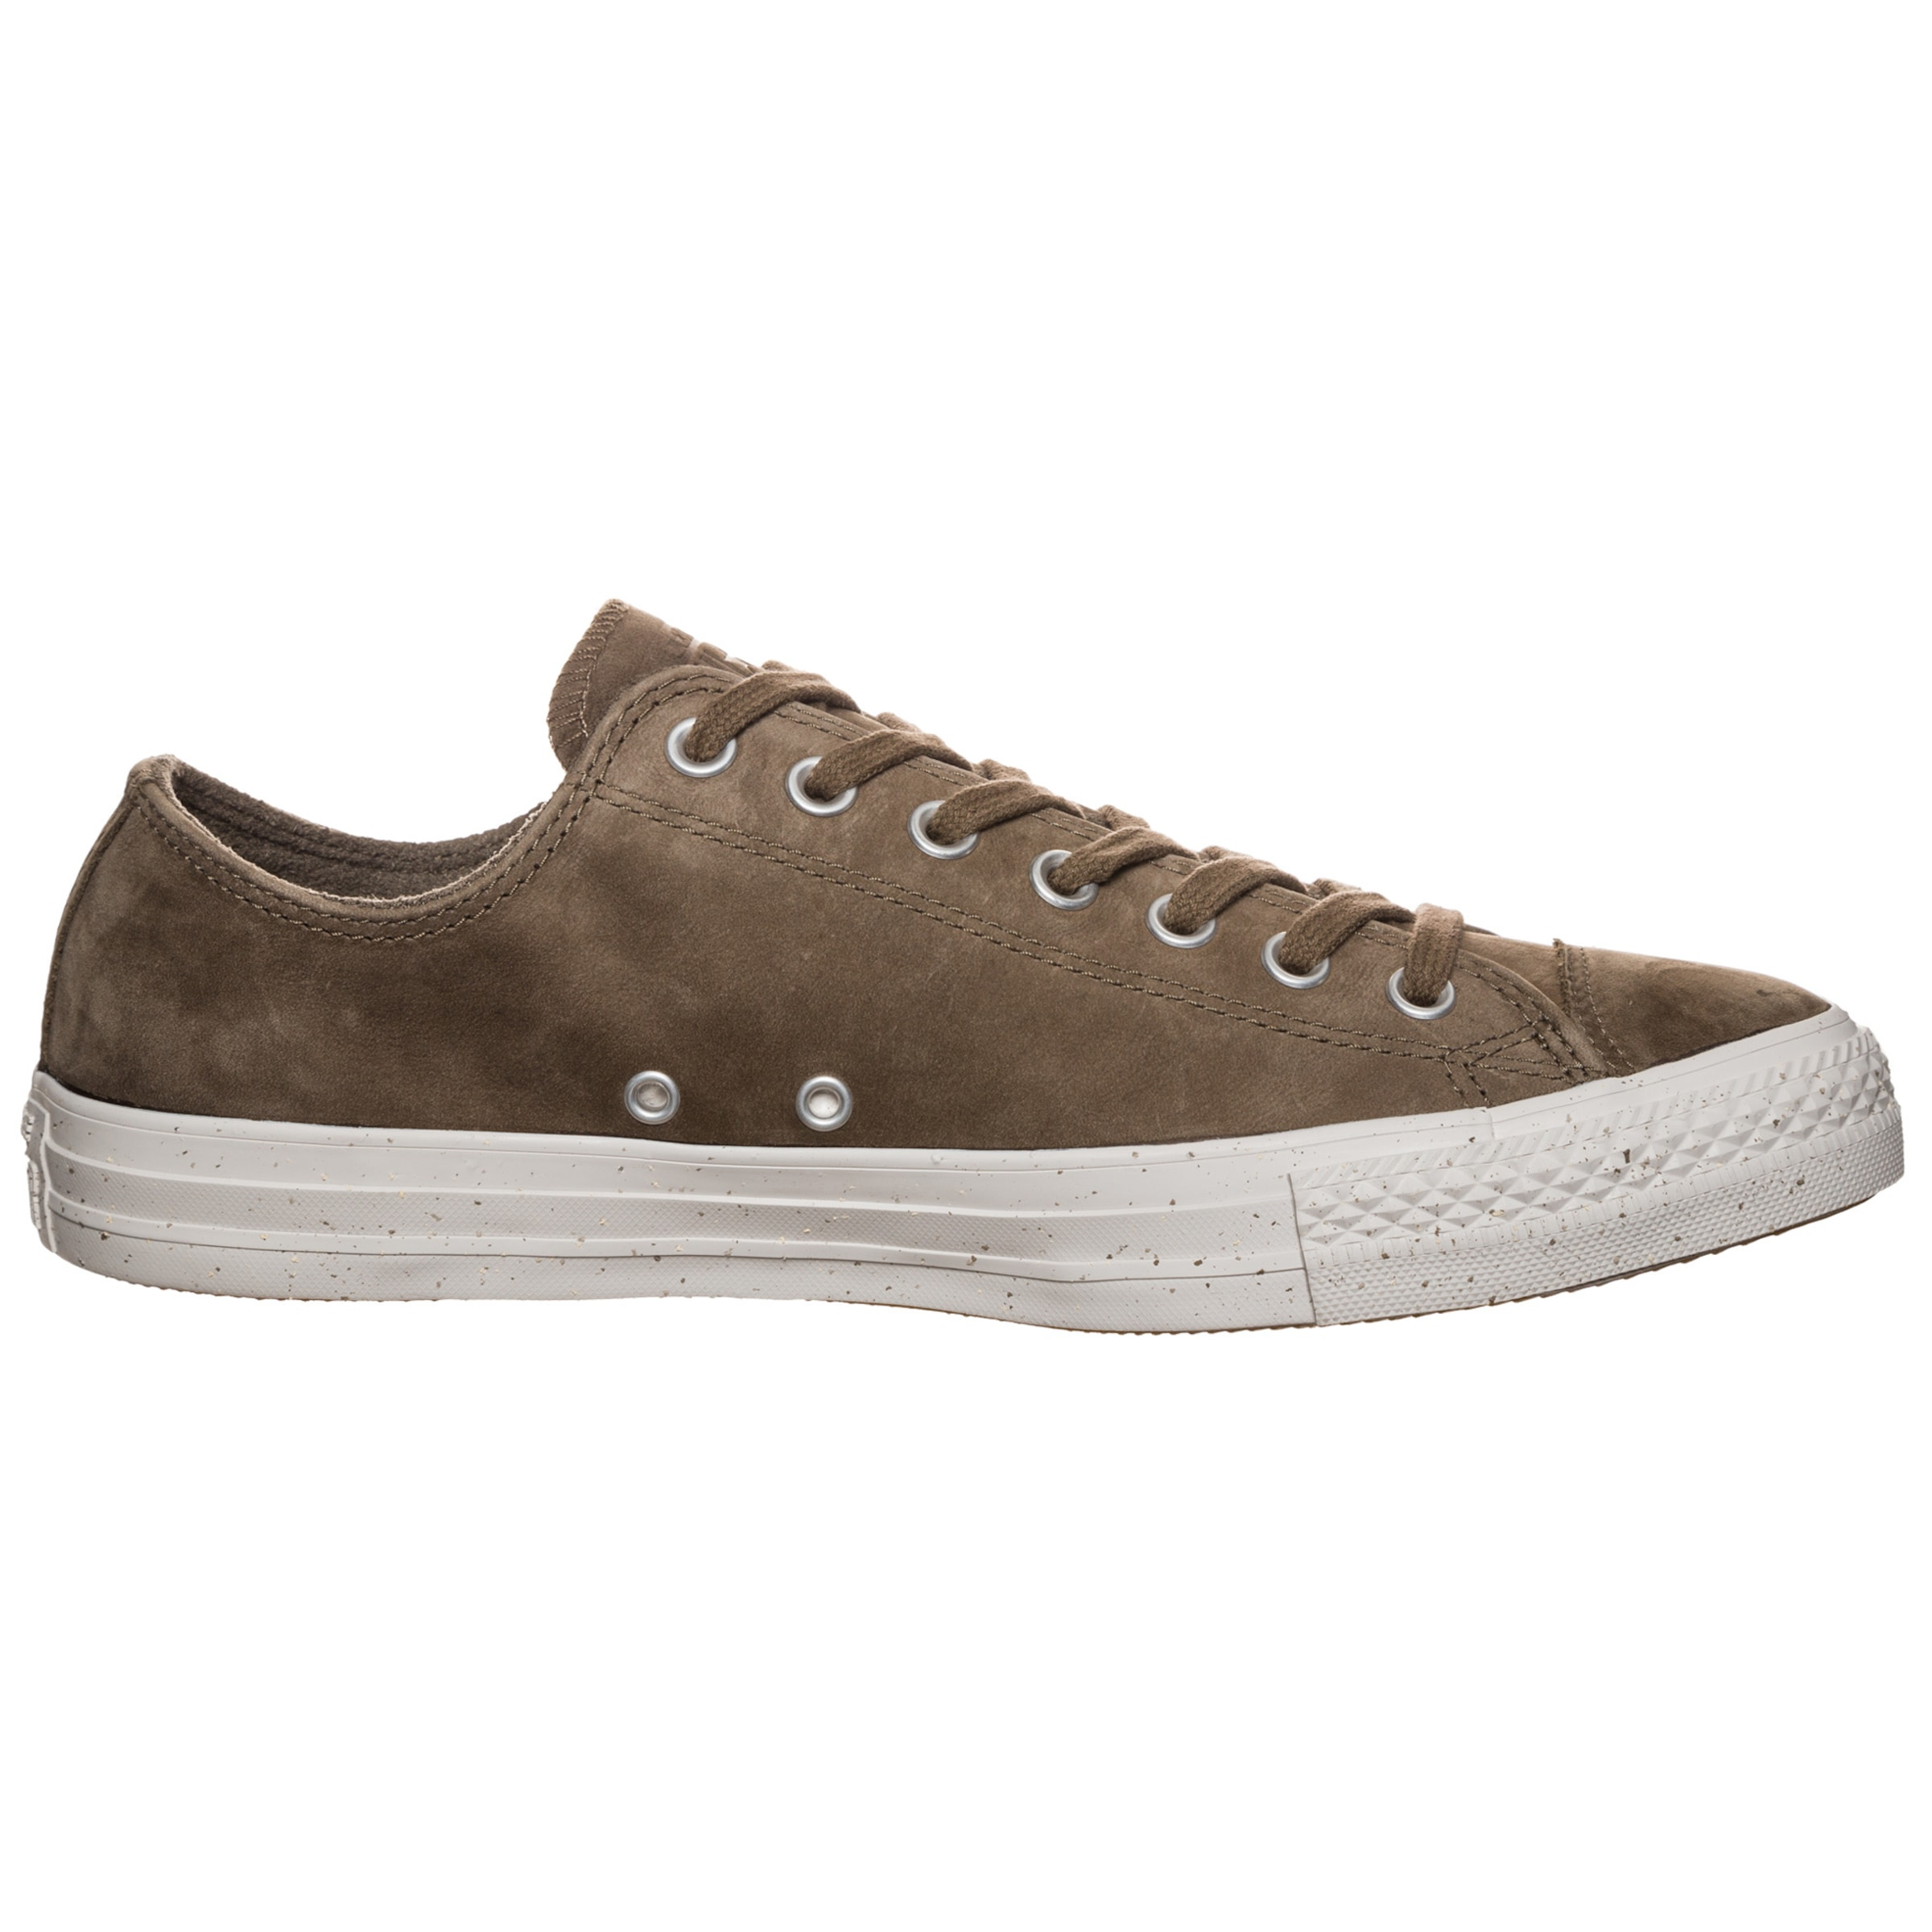 Ox All Sneaker Braun In Star Chuck Taylor Converse f7vmIYb6gy